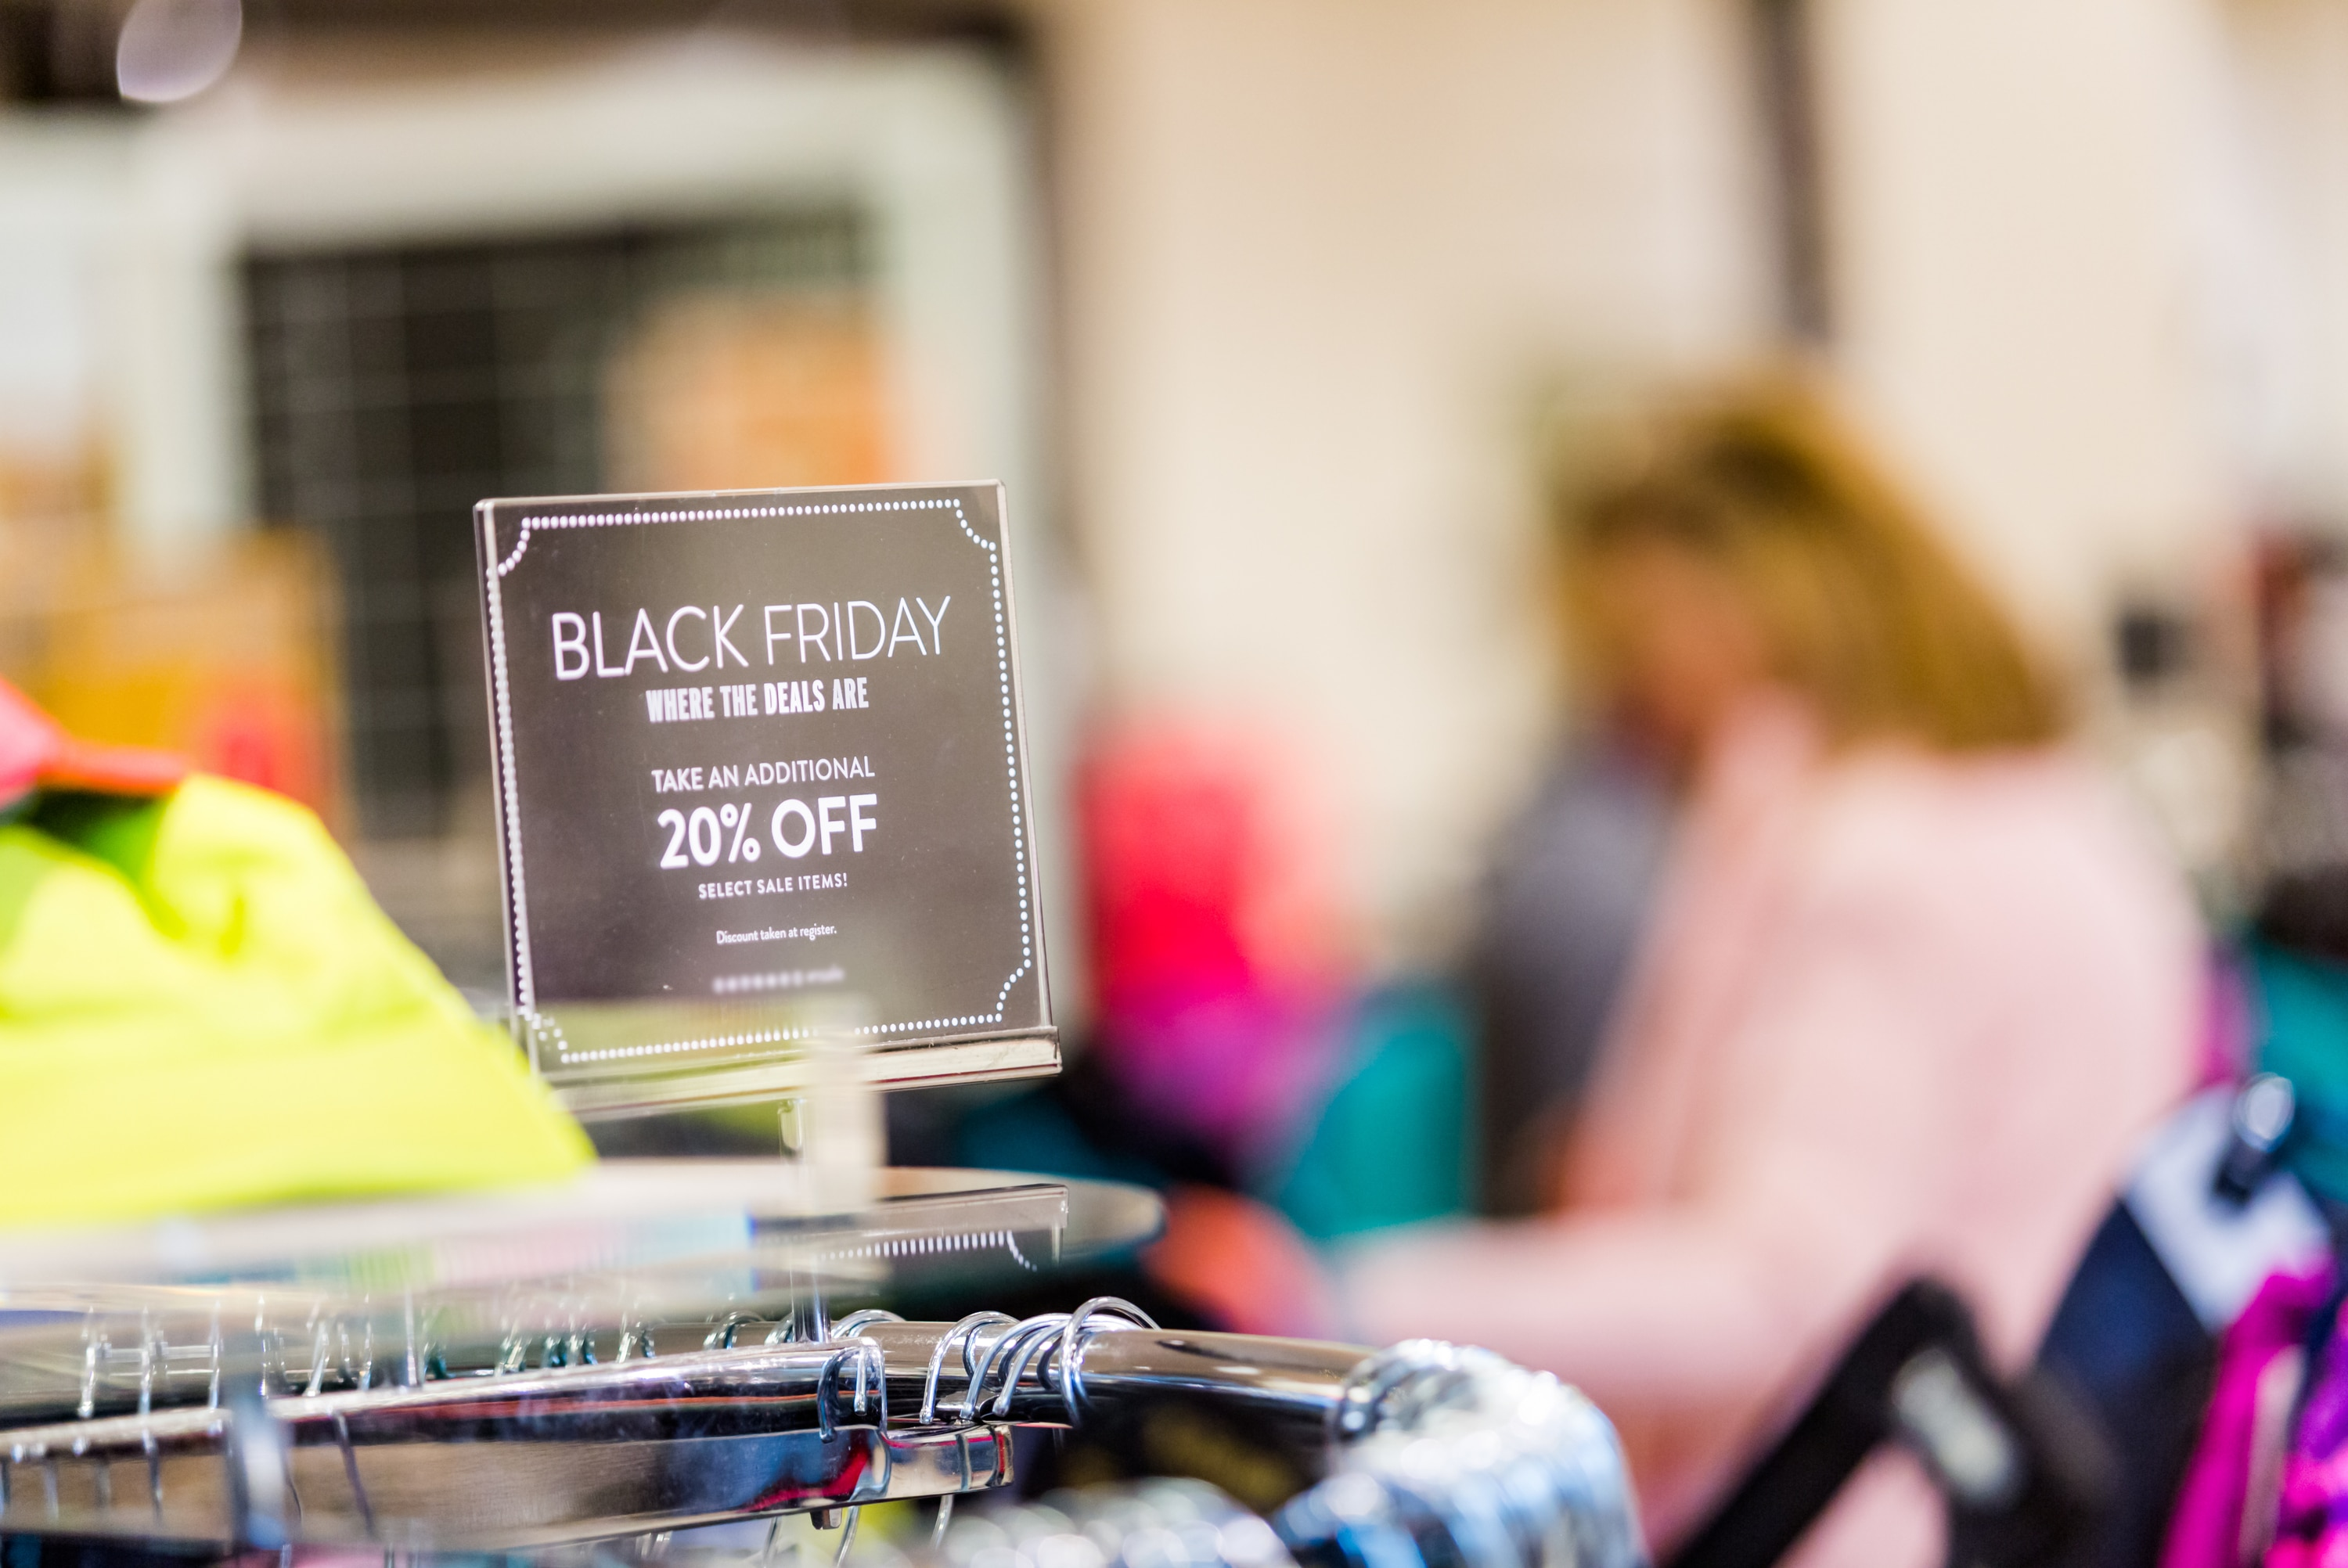 Top 27 Black Friday Shopping Tips To Snag The Best Deals